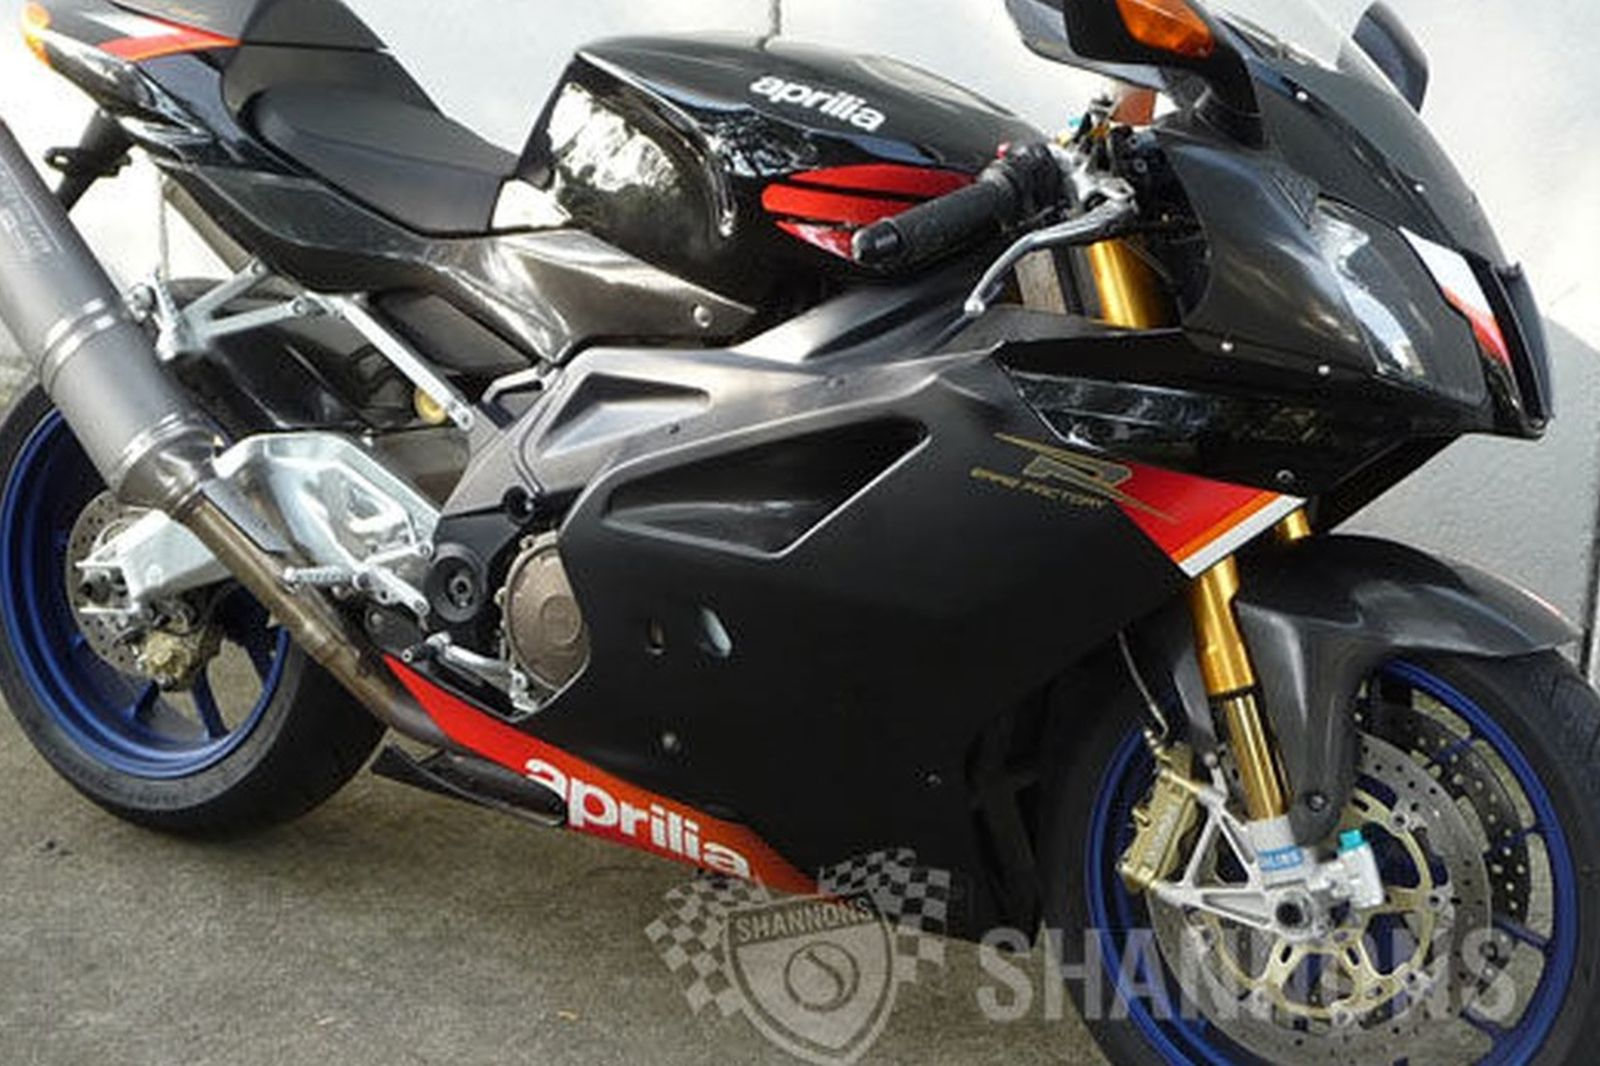 aprilia rsv 1000 r factory motorcycle auctions lot 20 shannons. Black Bedroom Furniture Sets. Home Design Ideas